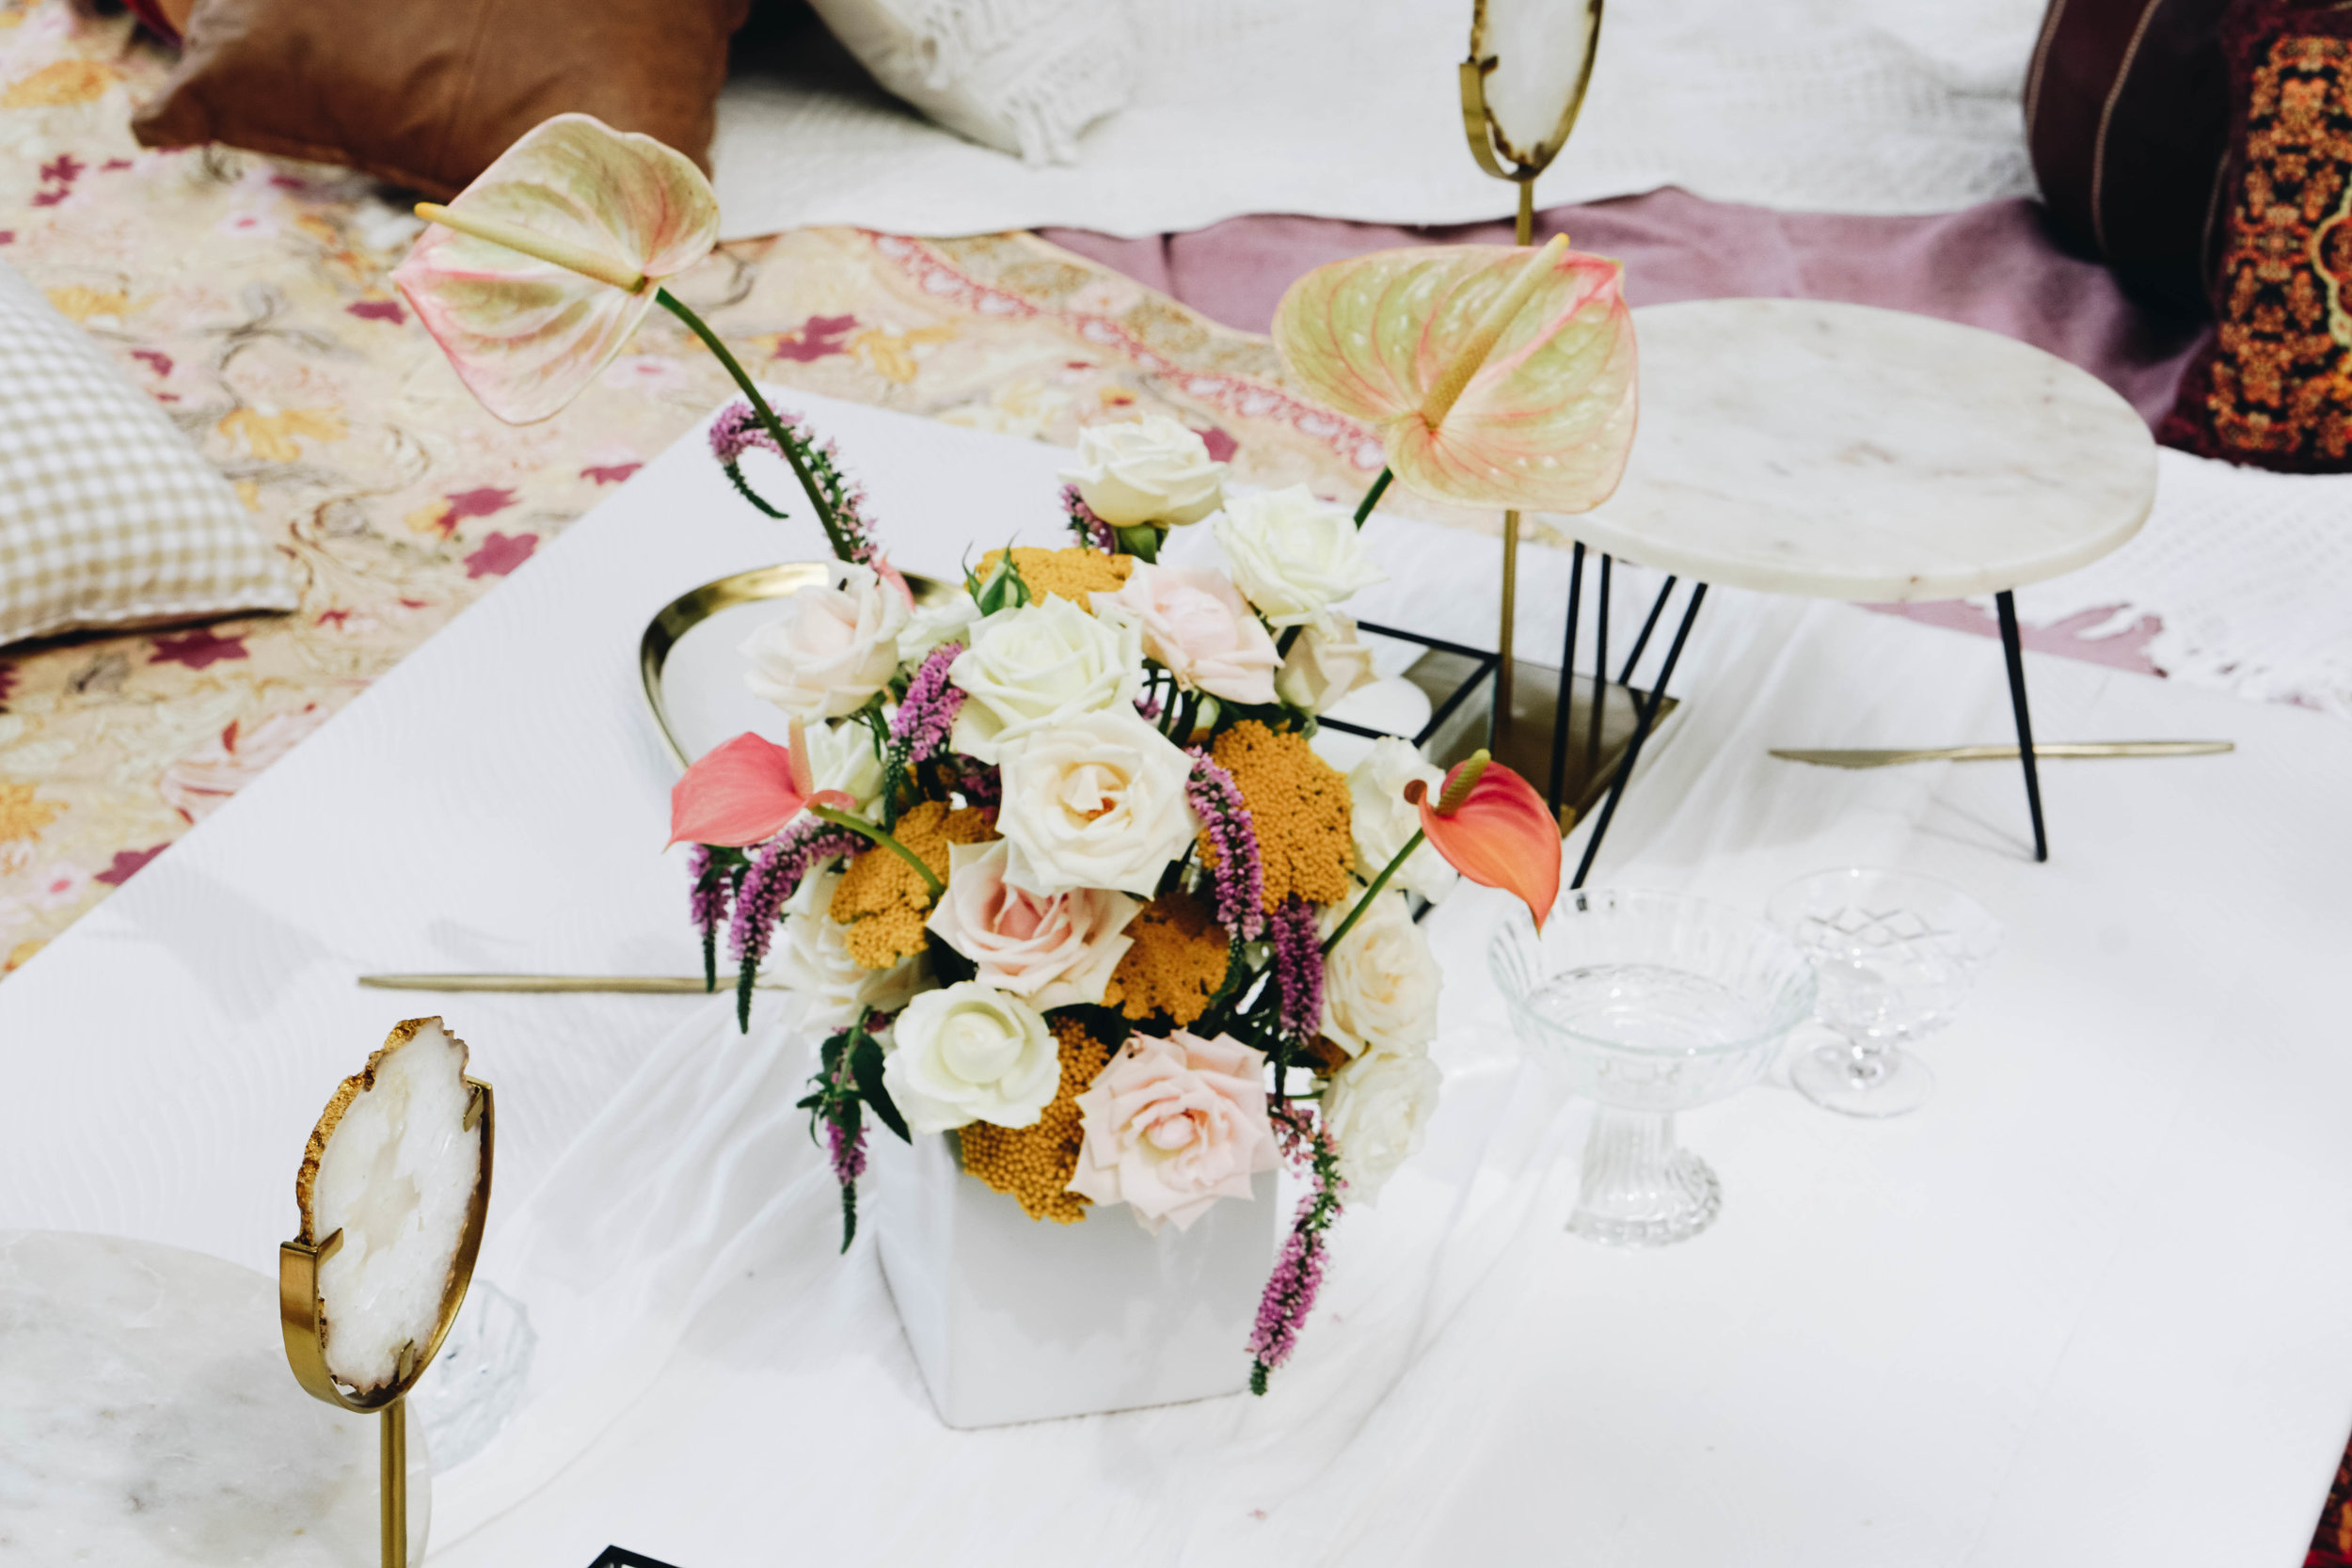 The_Collection_Co_ Styling_Tablescape_style_eventplanner_eventstyler_table_setting_cotton_blooms_cairns_luxe_wedding_coral_tablewear_pink_placemats_design_candles_eventhirecairns_fnqwedding-38.jpg